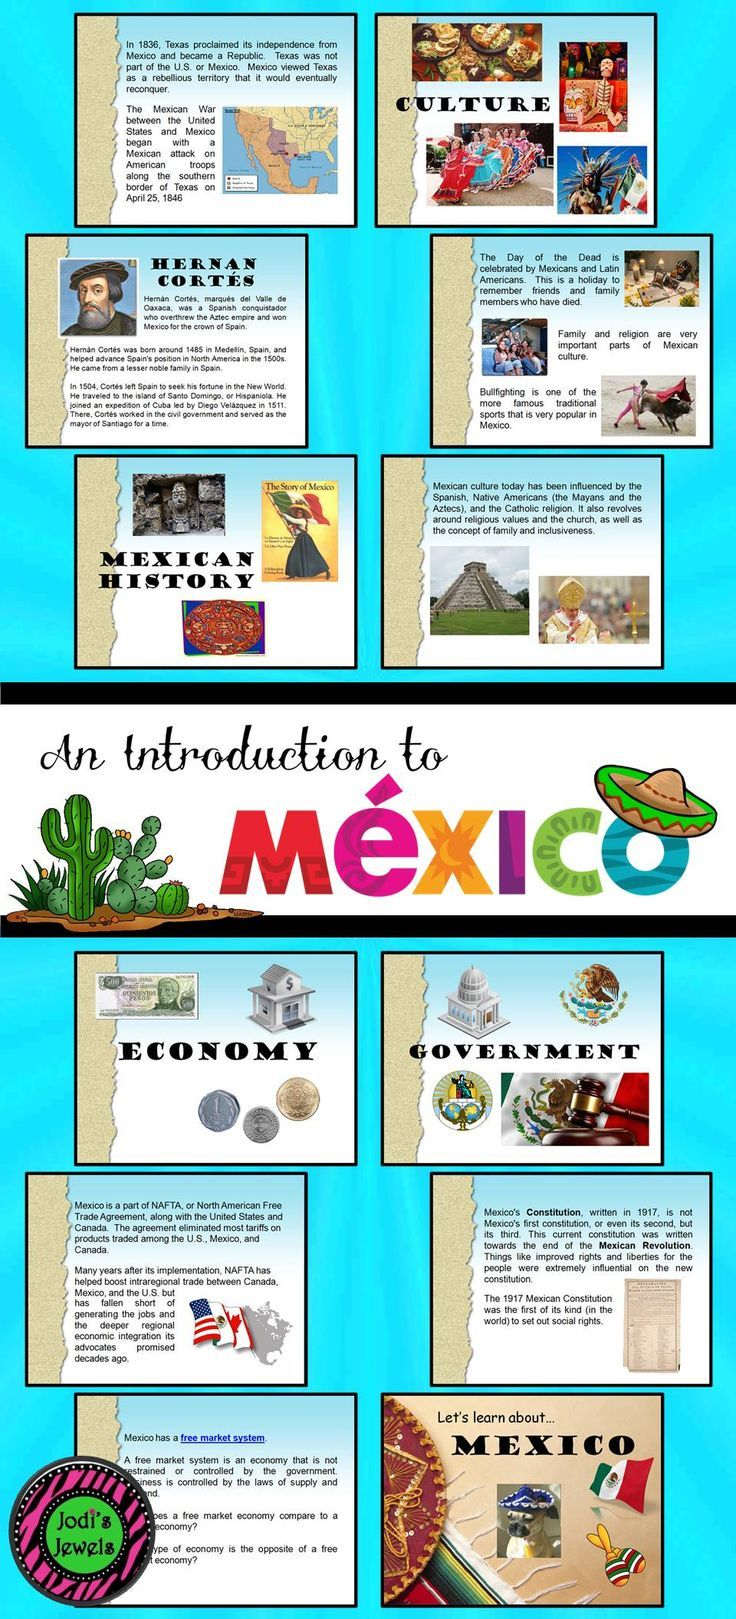 an introduction to mexico social studies history ideas tips